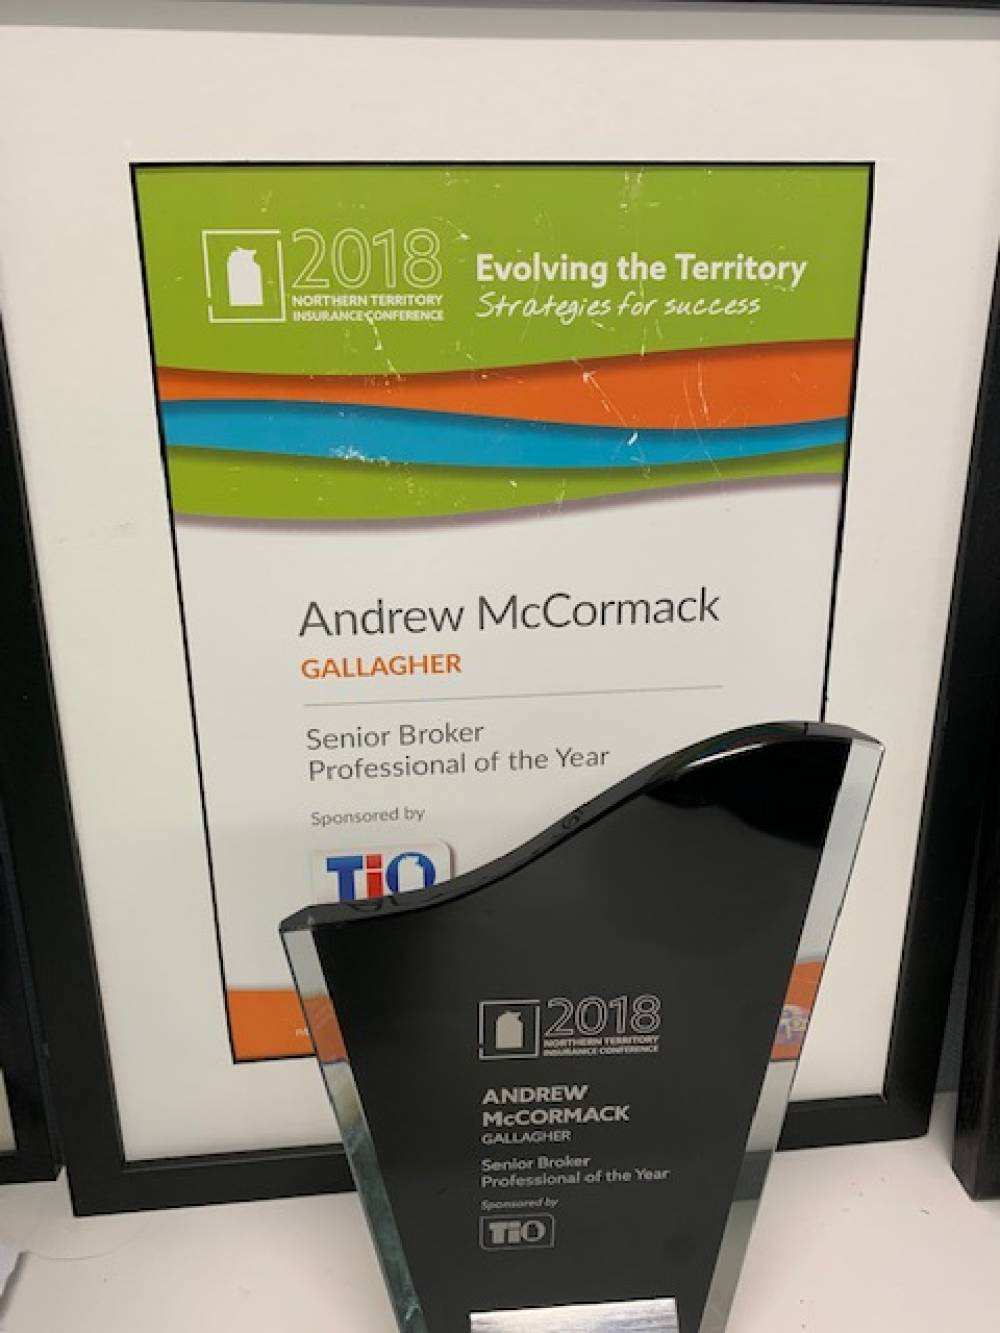 Northern Territory Insurance Conference 2018 Senior Broker Professional of the Year